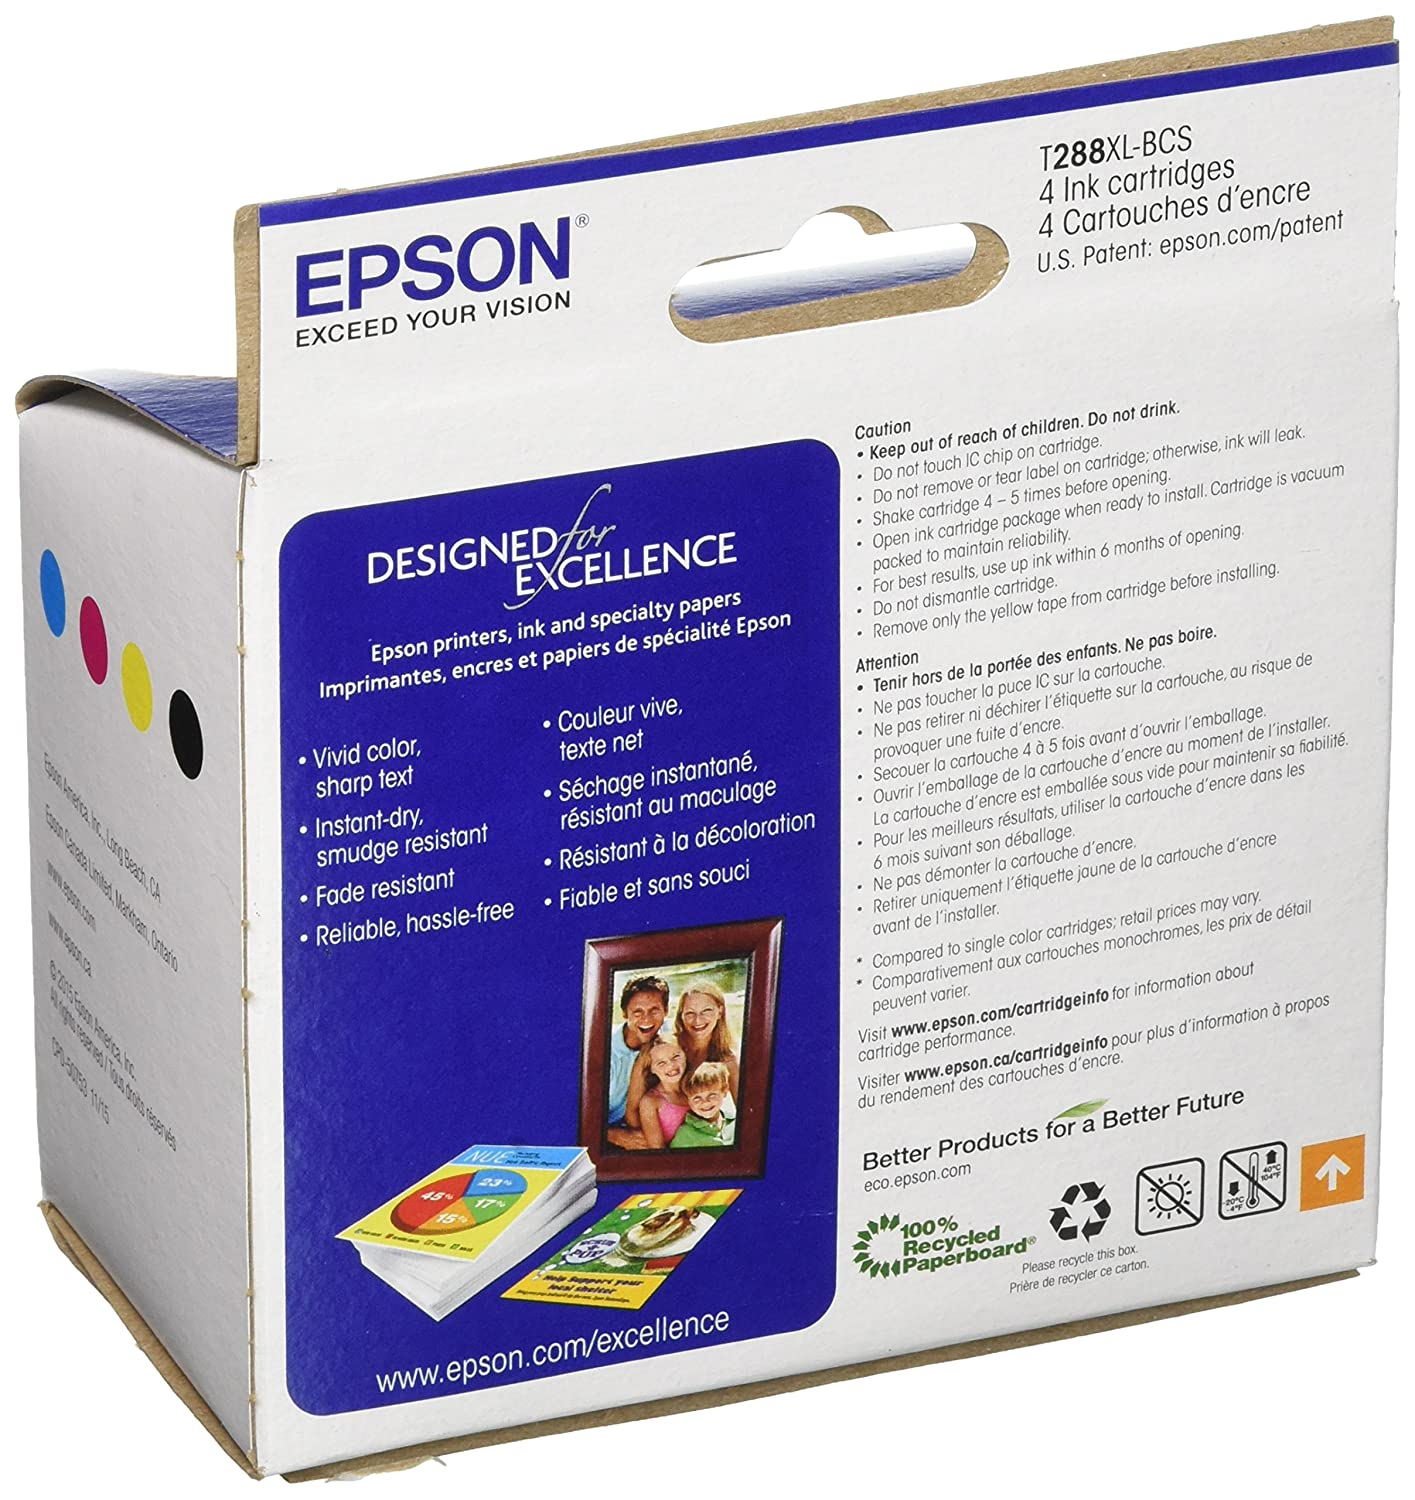 epson t288xl bcs black high capacity and color